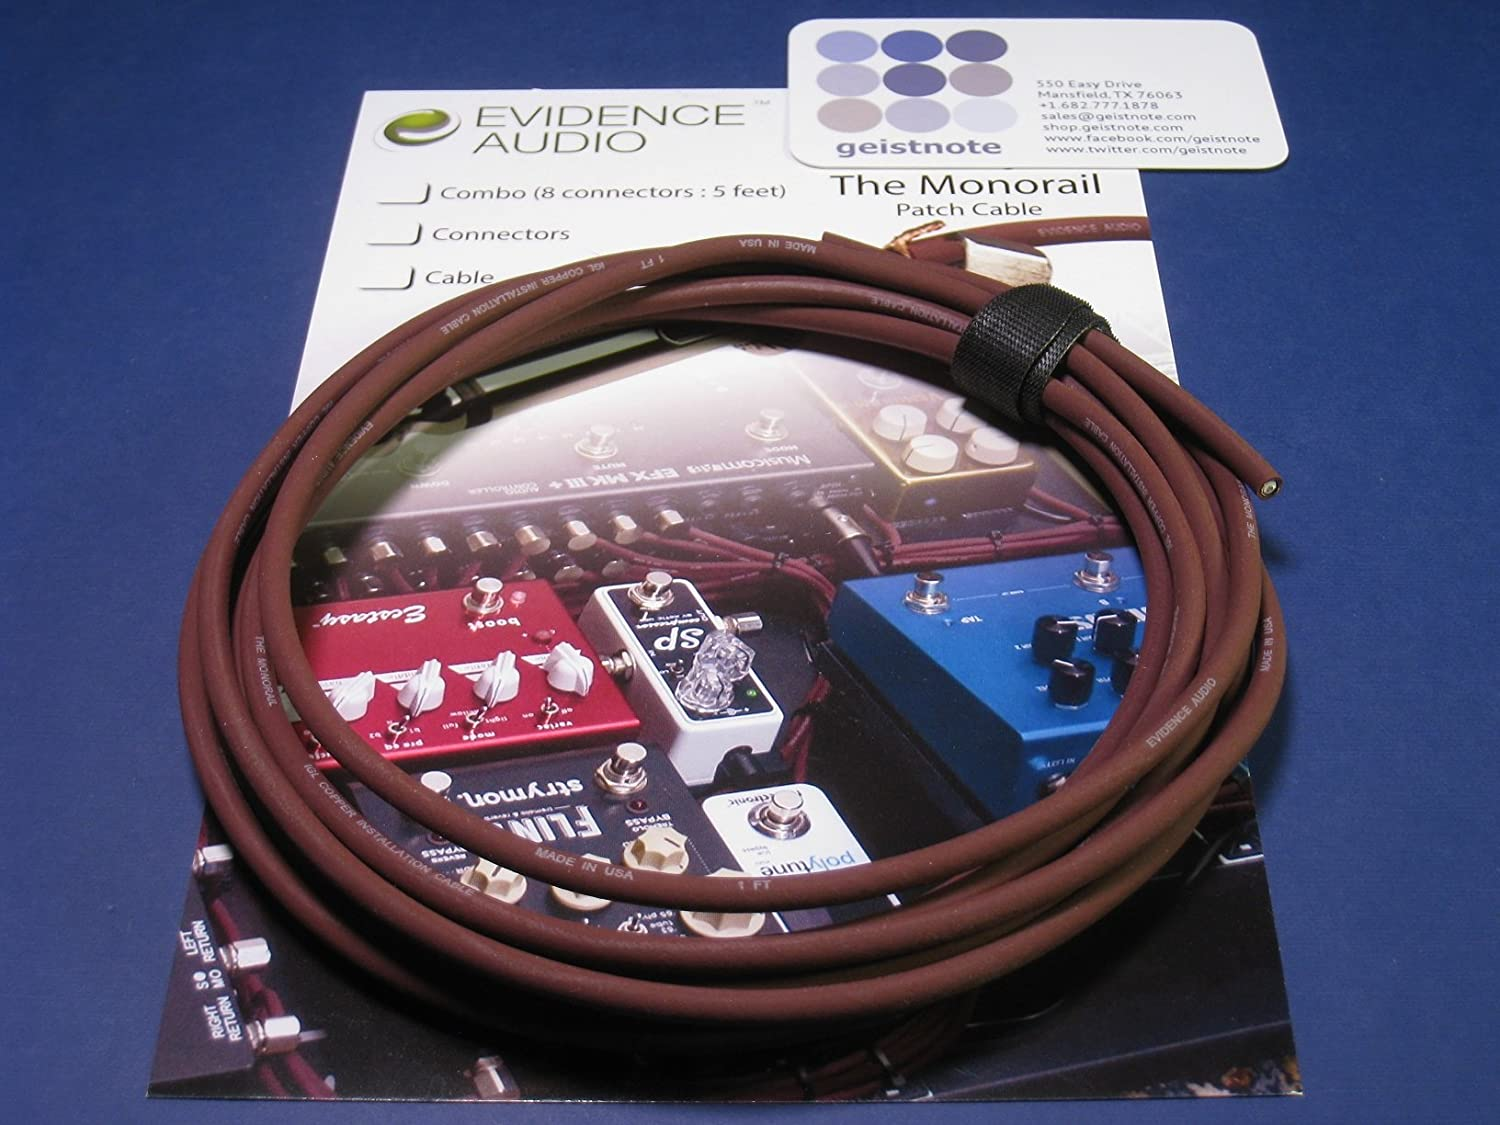 Pedalboard Kit Geistnotes Evidence Audio The Monorail Solderless Burgundy Cable 20 SIS plugs//20 feet of Burgundy Monorail SIS